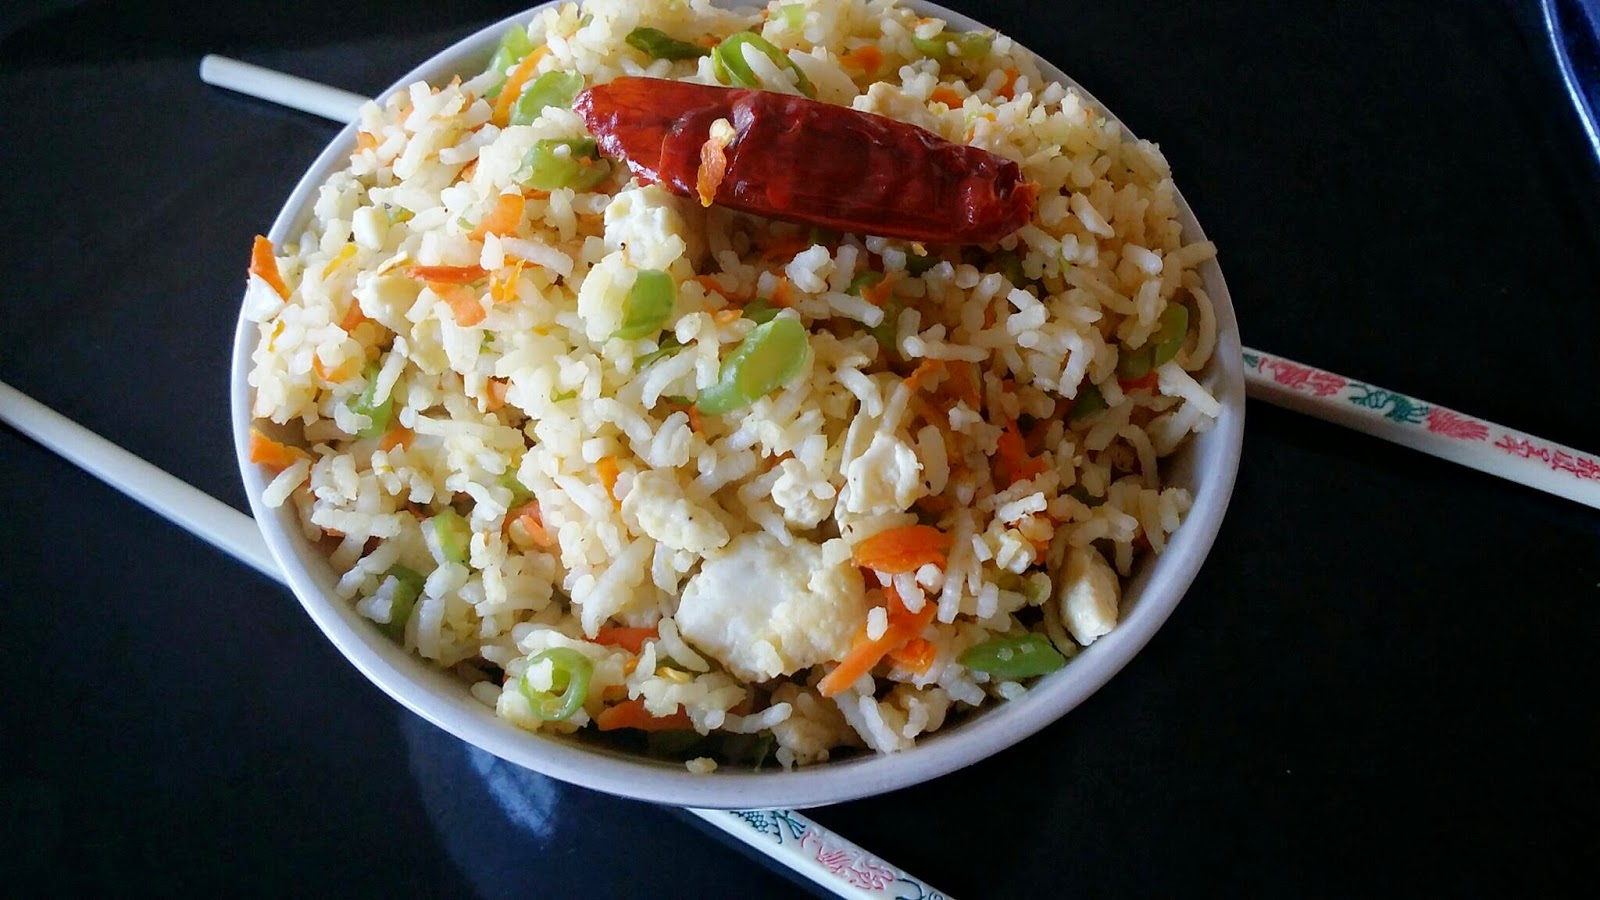 Nothingiscooking the cooking channel indo chinese sichuan if you are wondering which is quick easy tasty rice recipe then indo chinese is one of the good optiont a lot of ingredients are needed and not too forumfinder Images